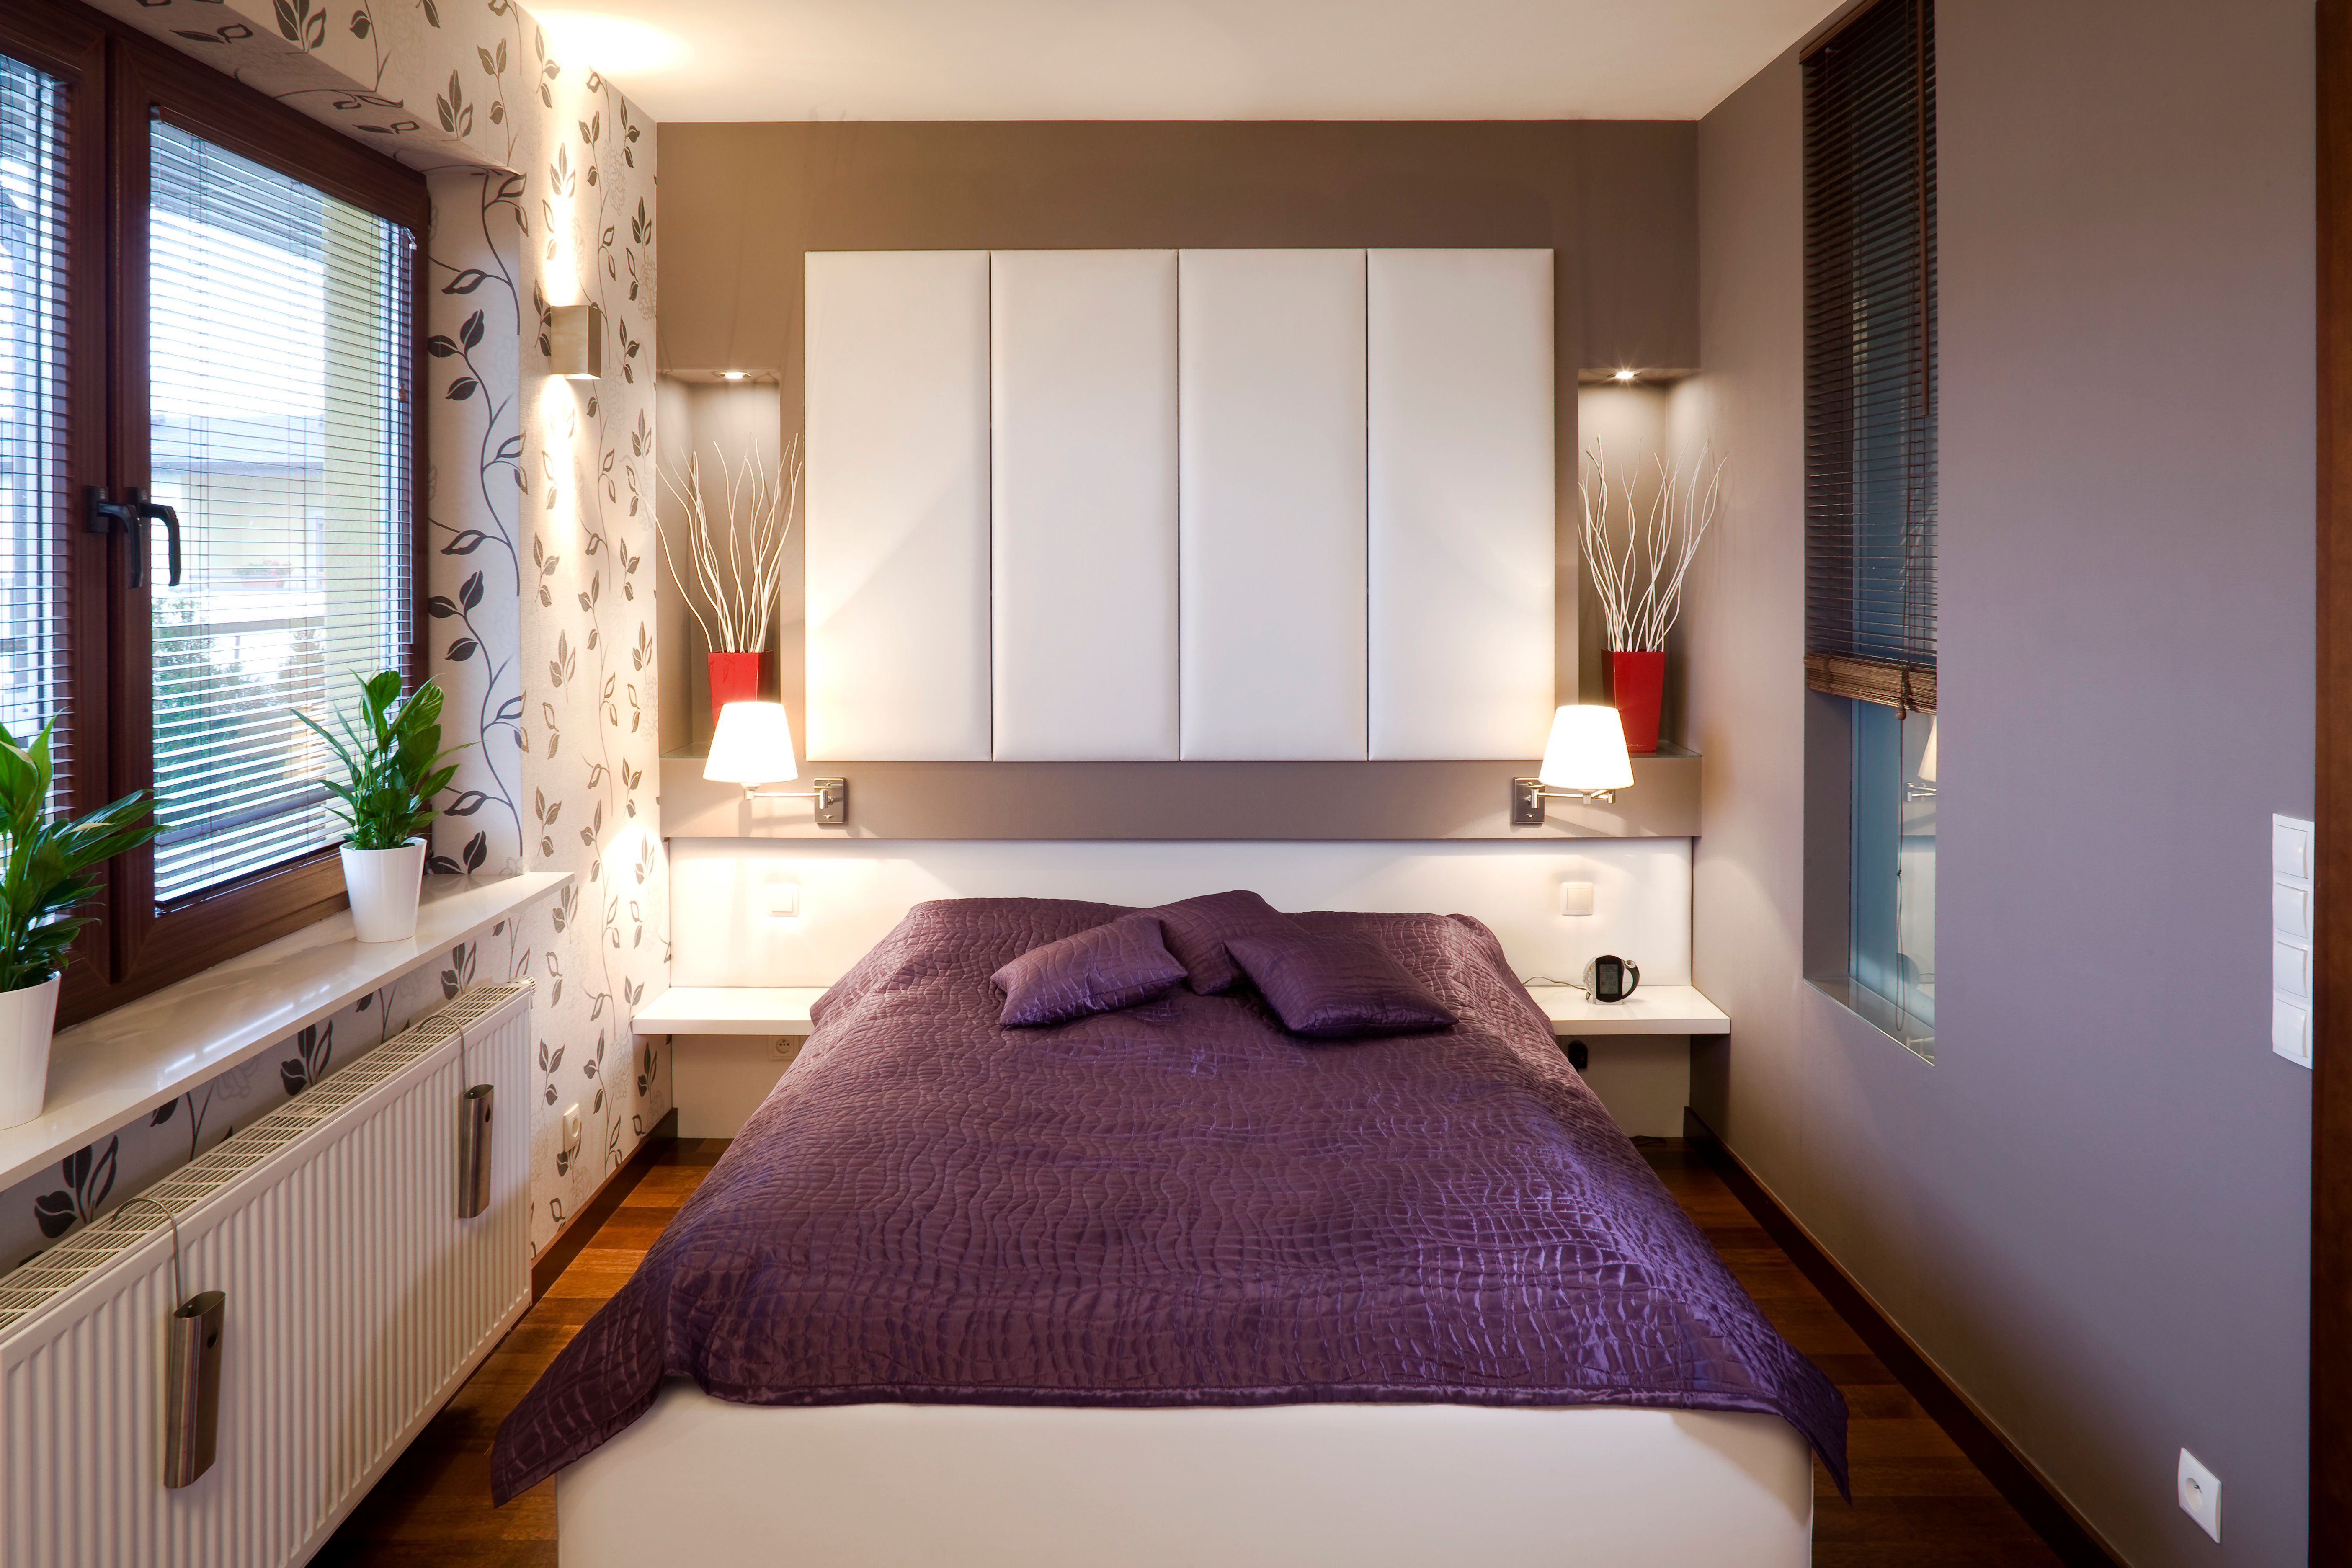 multifunctional bedroom furniture for small spaces huffpost life rh huffpost com modular bedroom furniture for small spaces bedroom furniture for small spaces uk